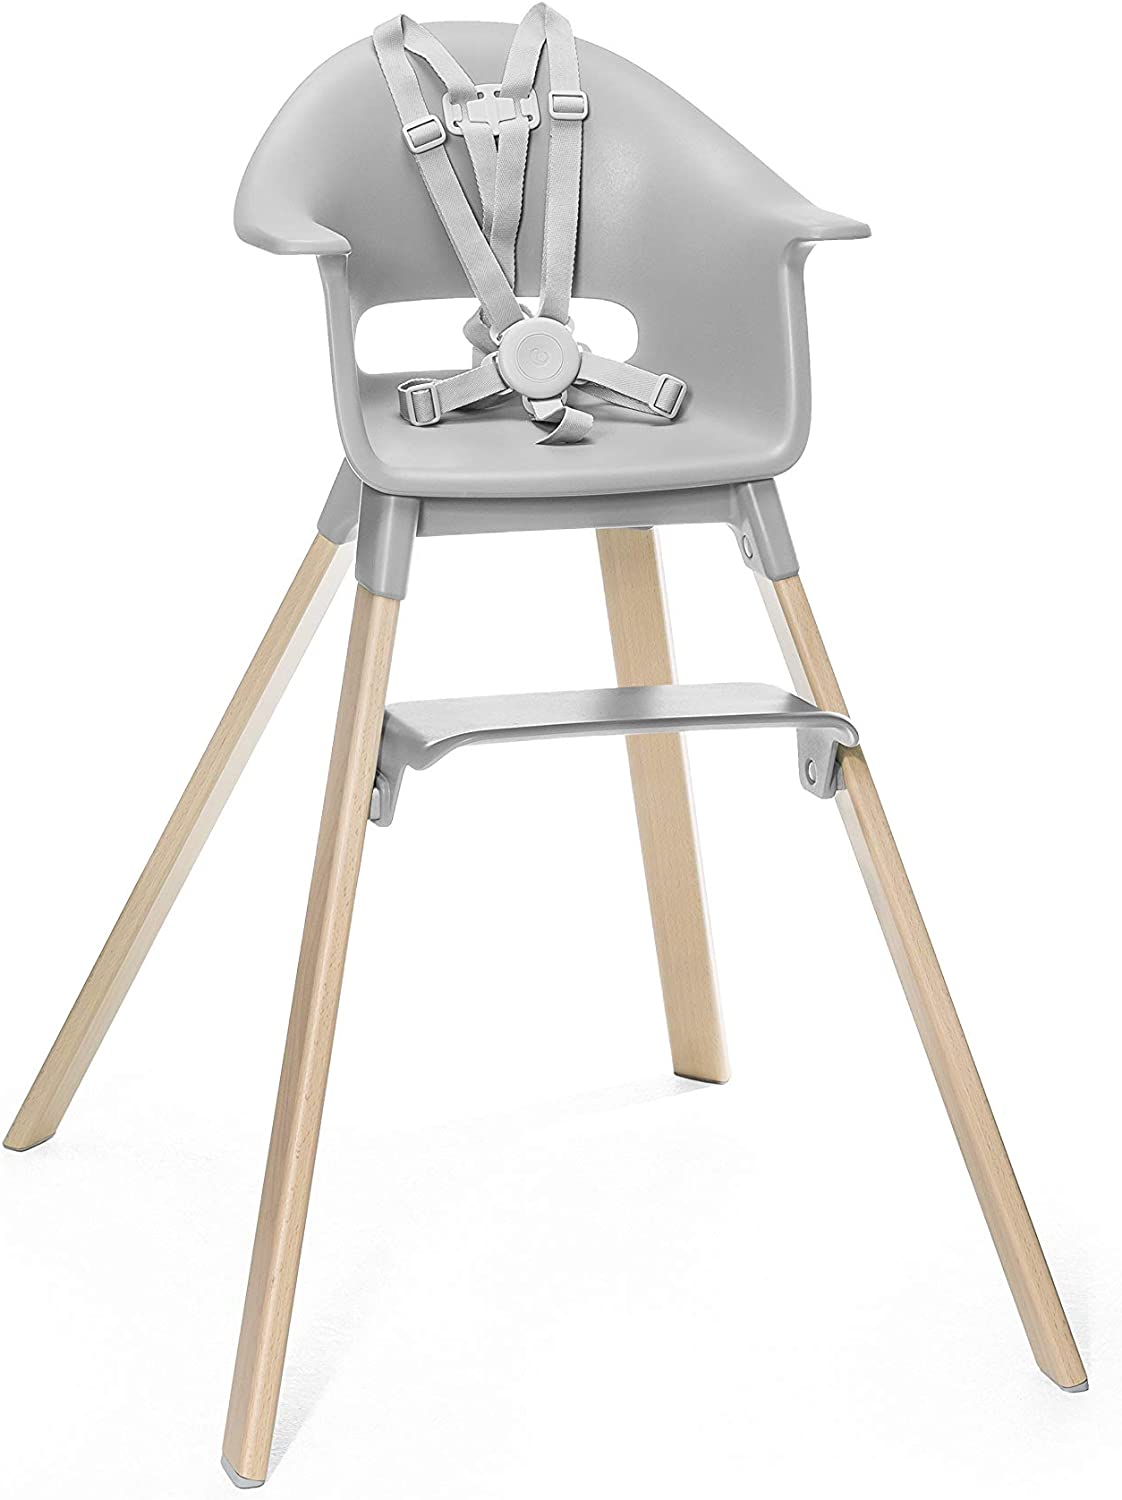 Adjustable Grow-Along Chair for Children with Tray and Safety Harness Colour: White Suitable from 6 Months to 3 Years Stokke Clikk High Chair